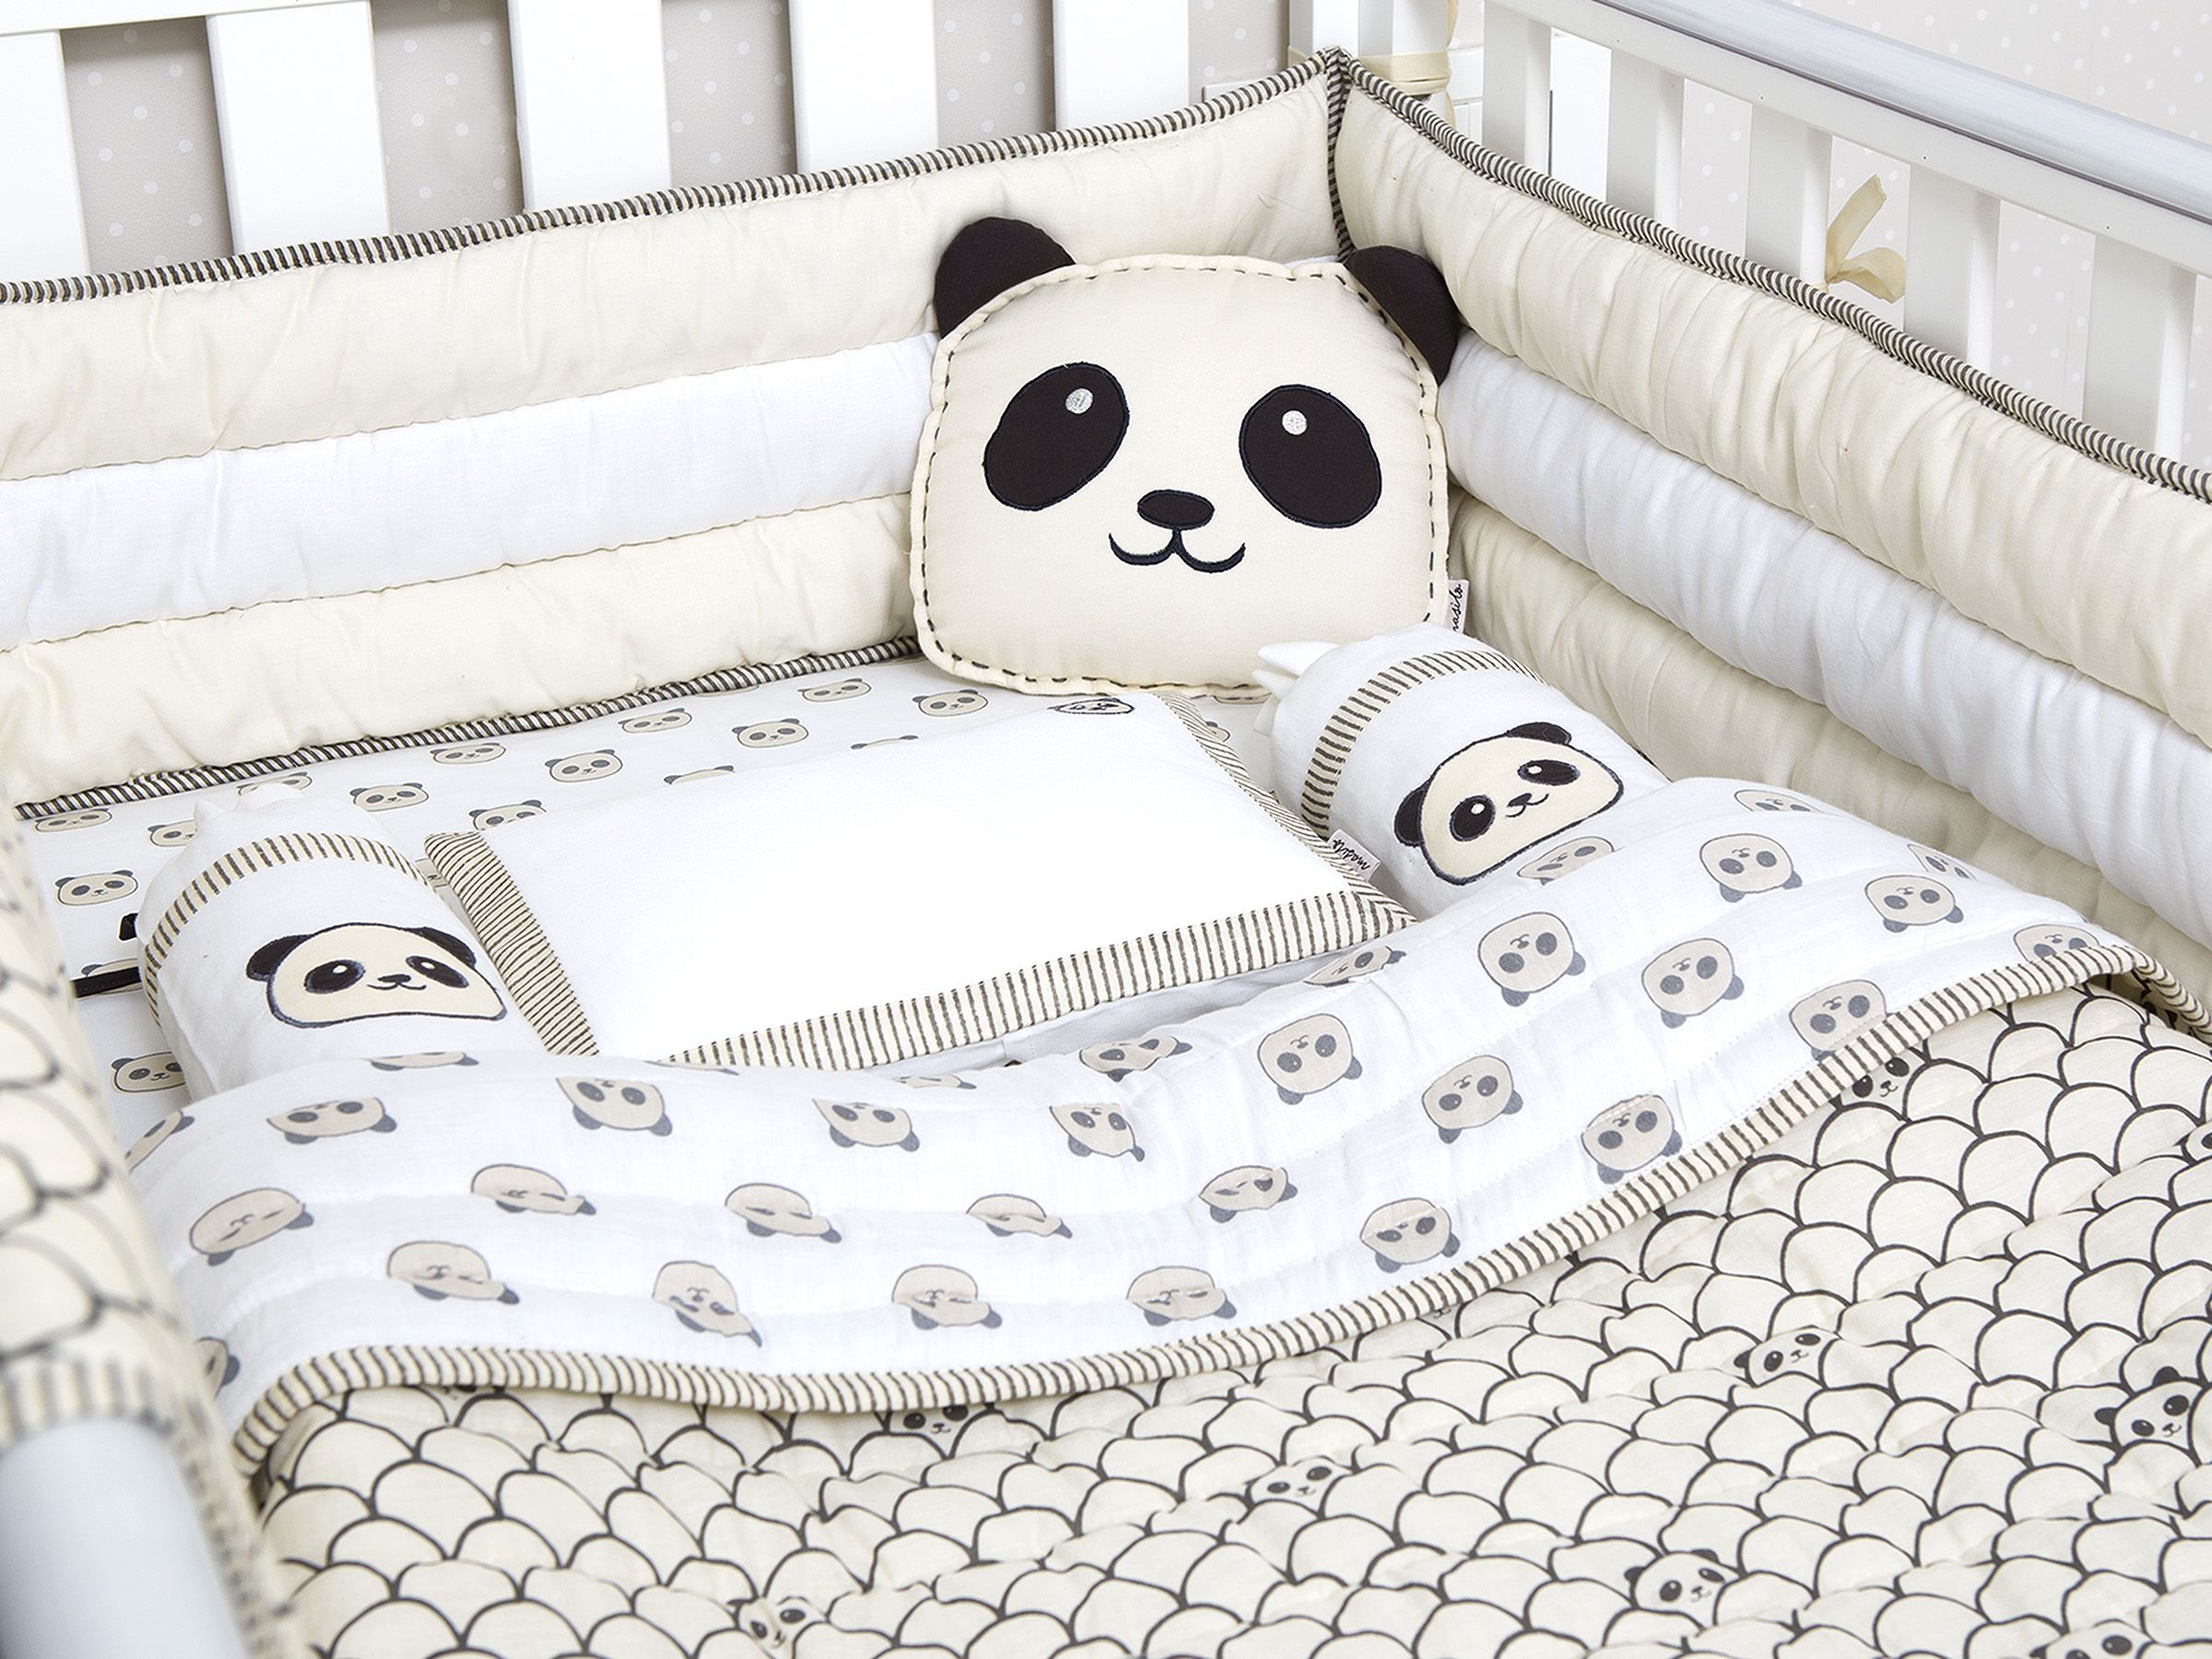 Best crib sheets for baby - Peekaboo Panda Organic Crib Bedding Set Baby Bedding Set Baby Blanket Baby